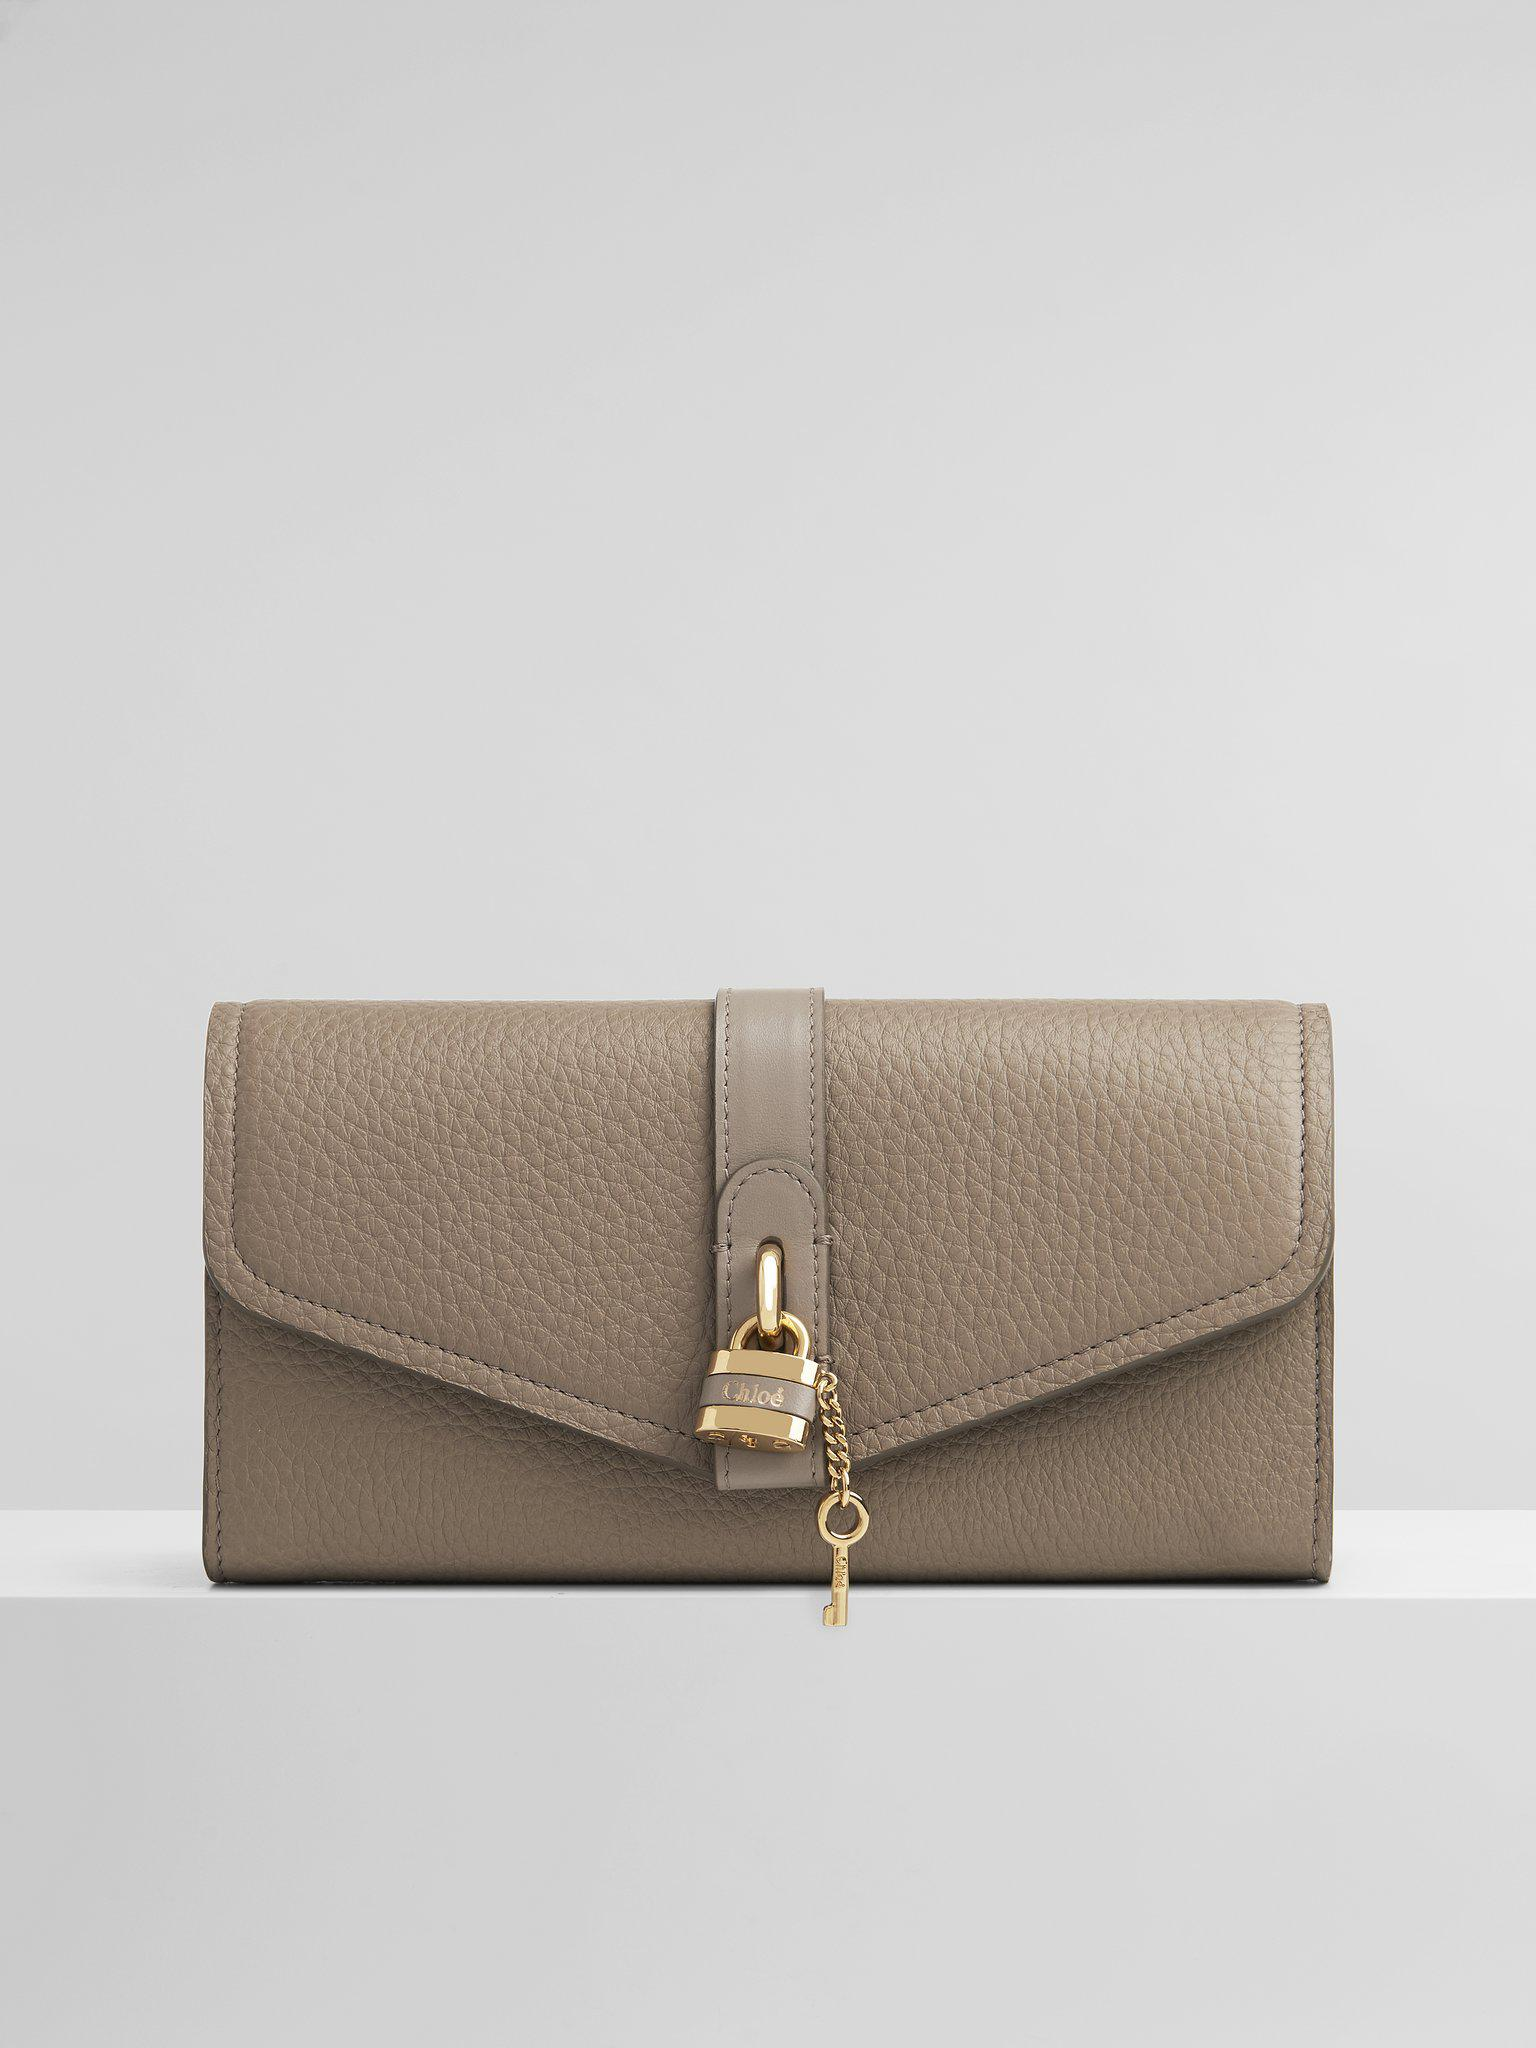 ABY LONG WALLET WITH FLAP